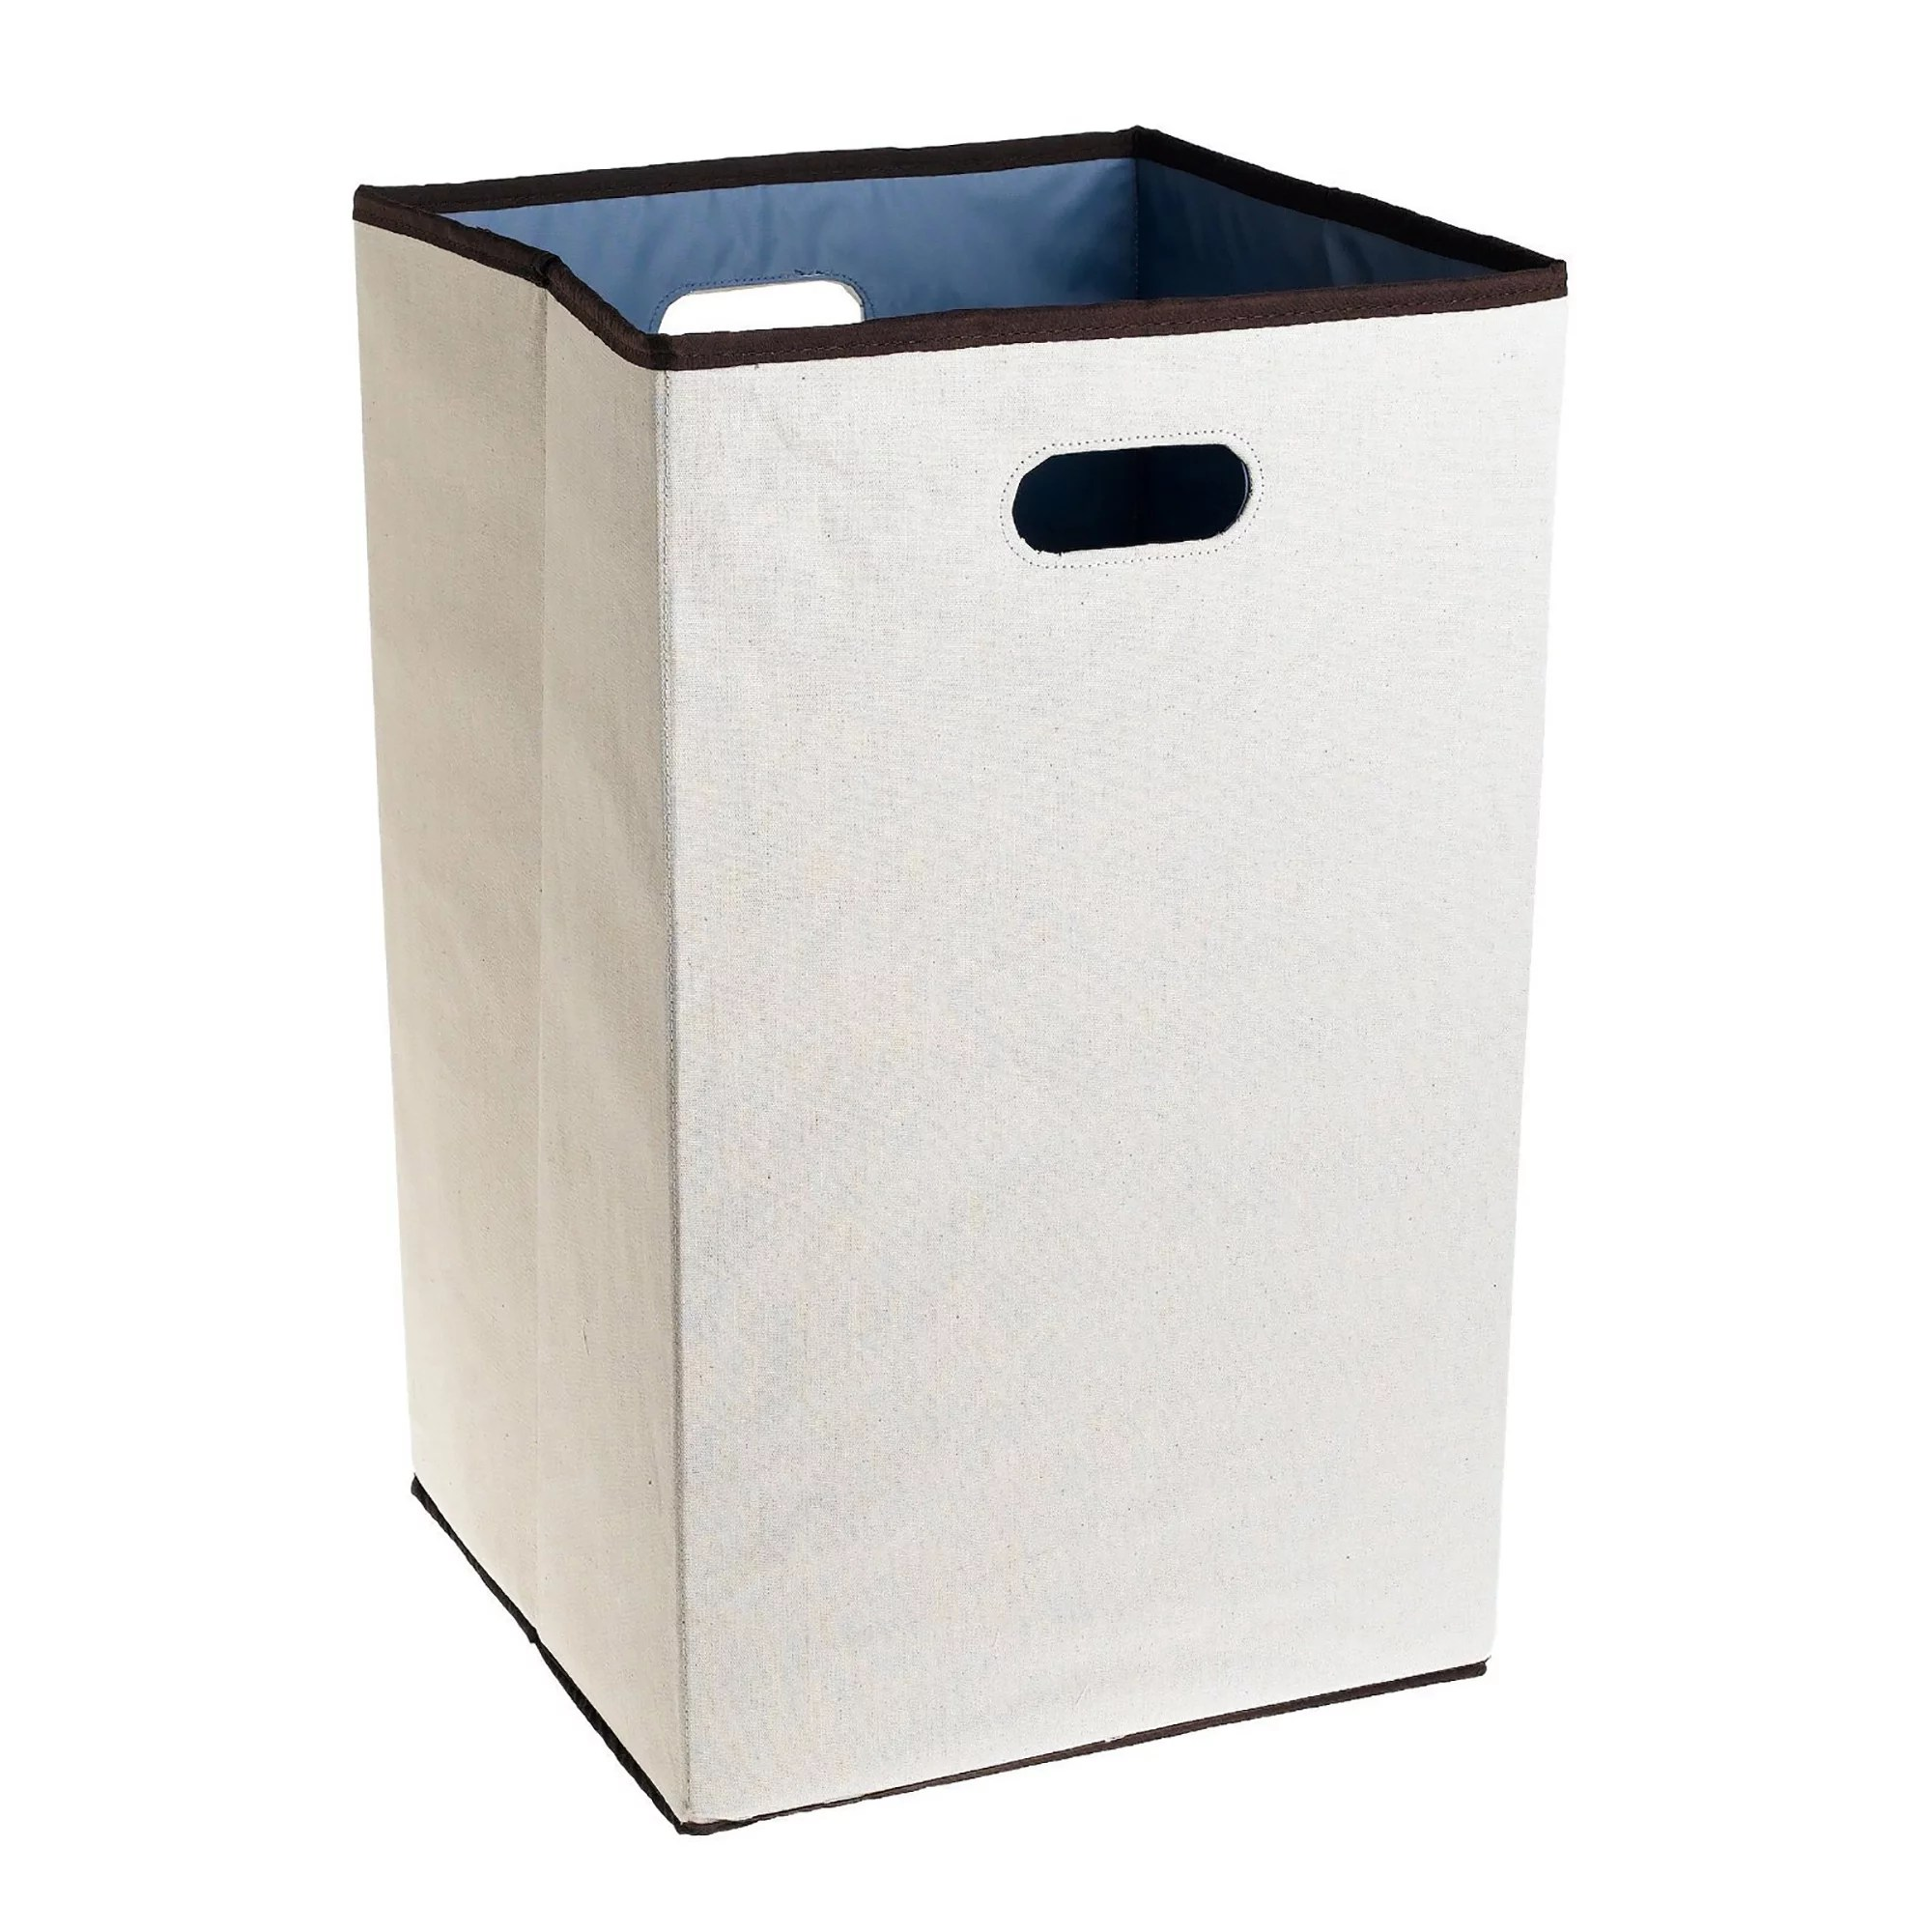 Dirty Laundry Baskets Rubbermaid Configurations Collapsible Laundry Hamper